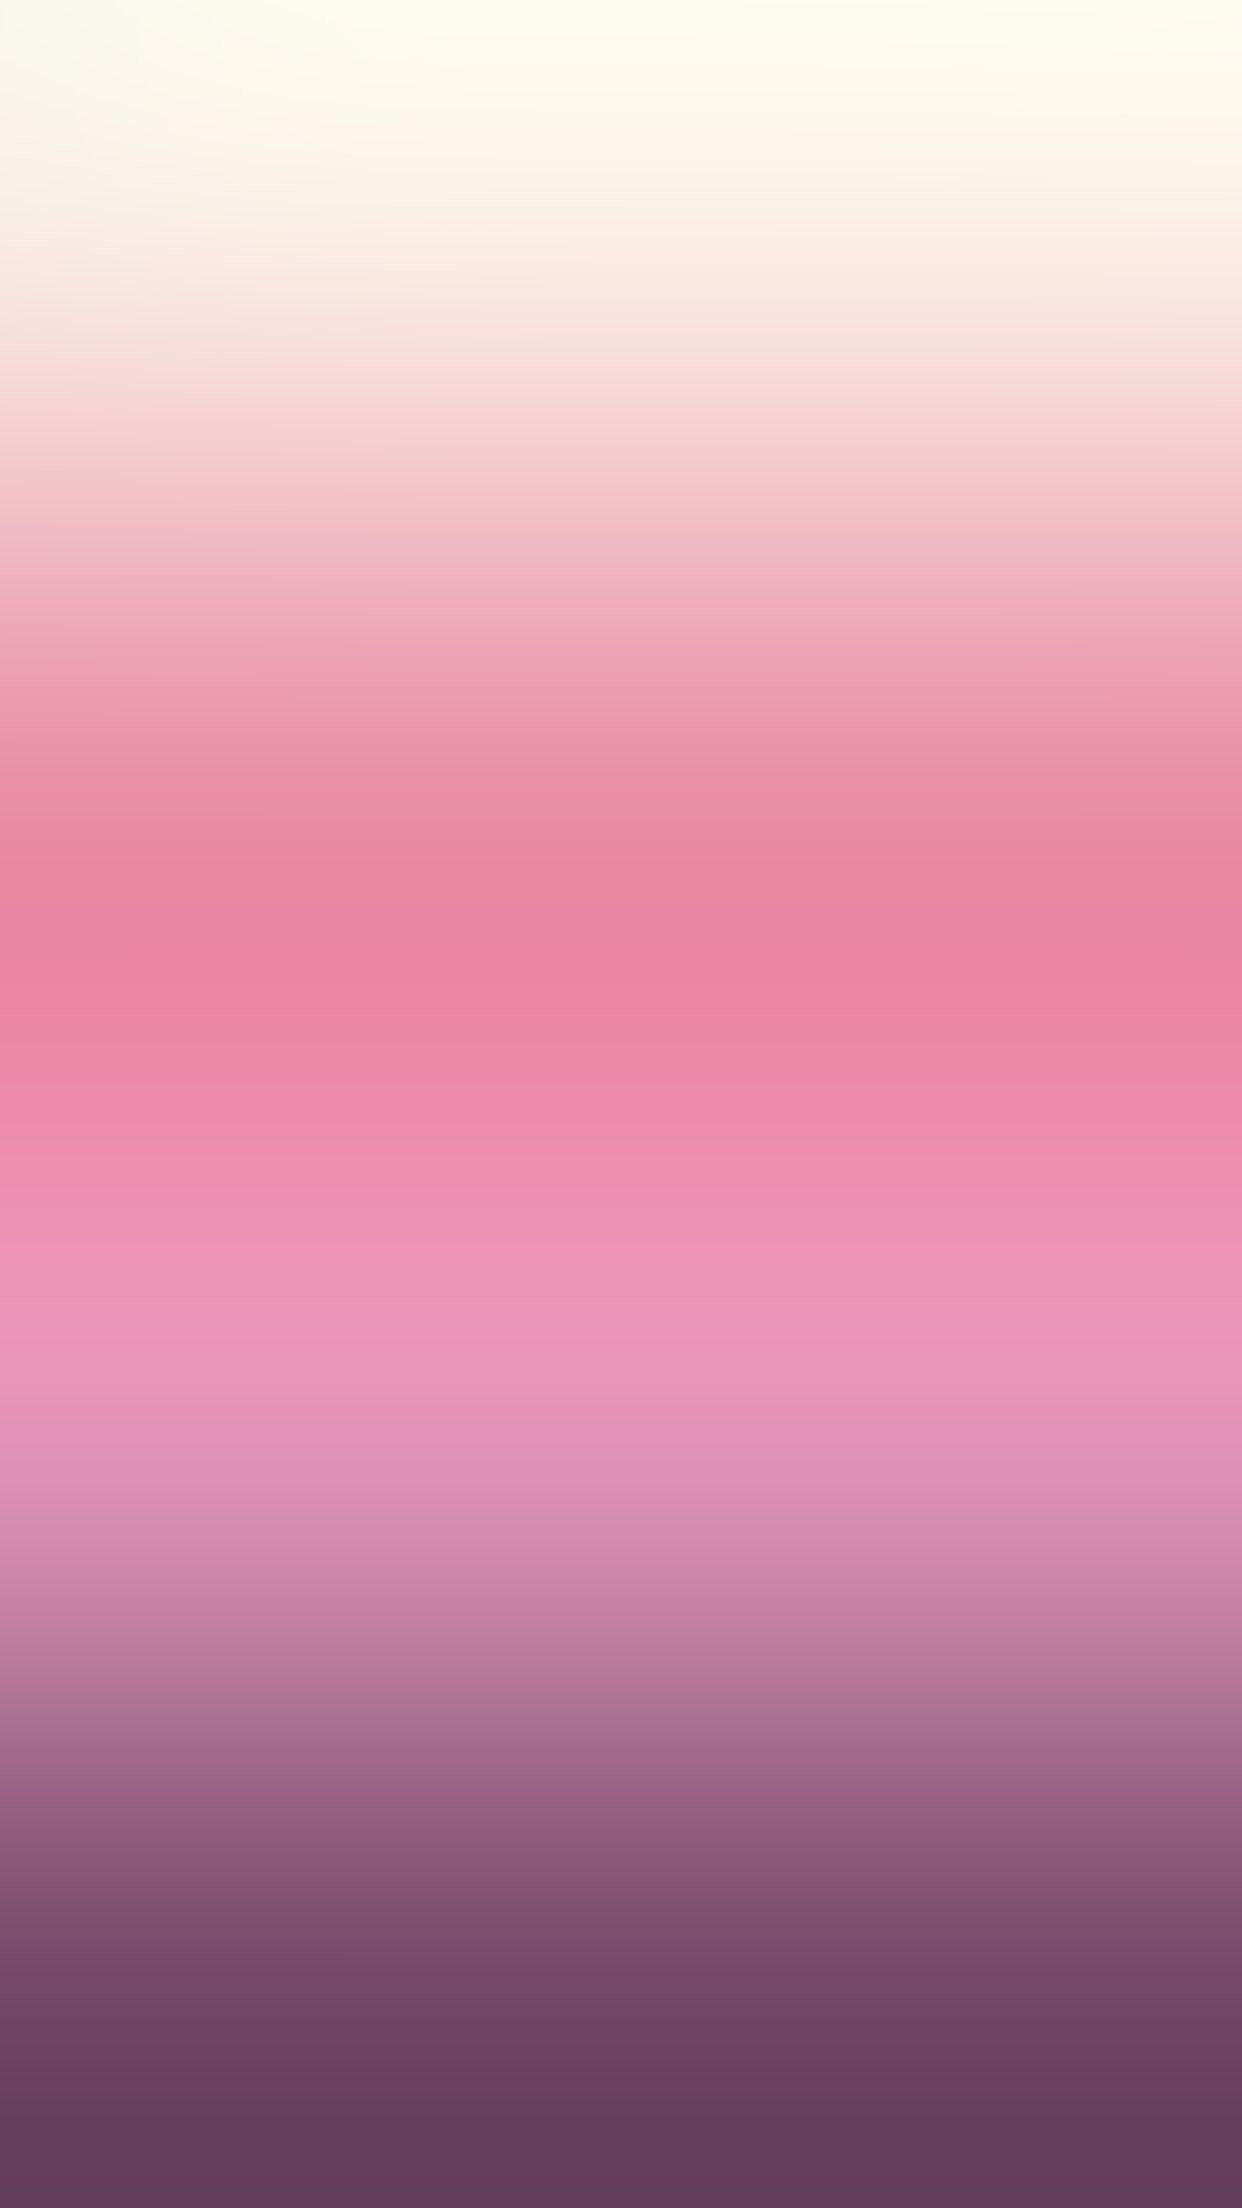 1242x2208 44+ Soft Pink Wallpapers on WallpaperPlay